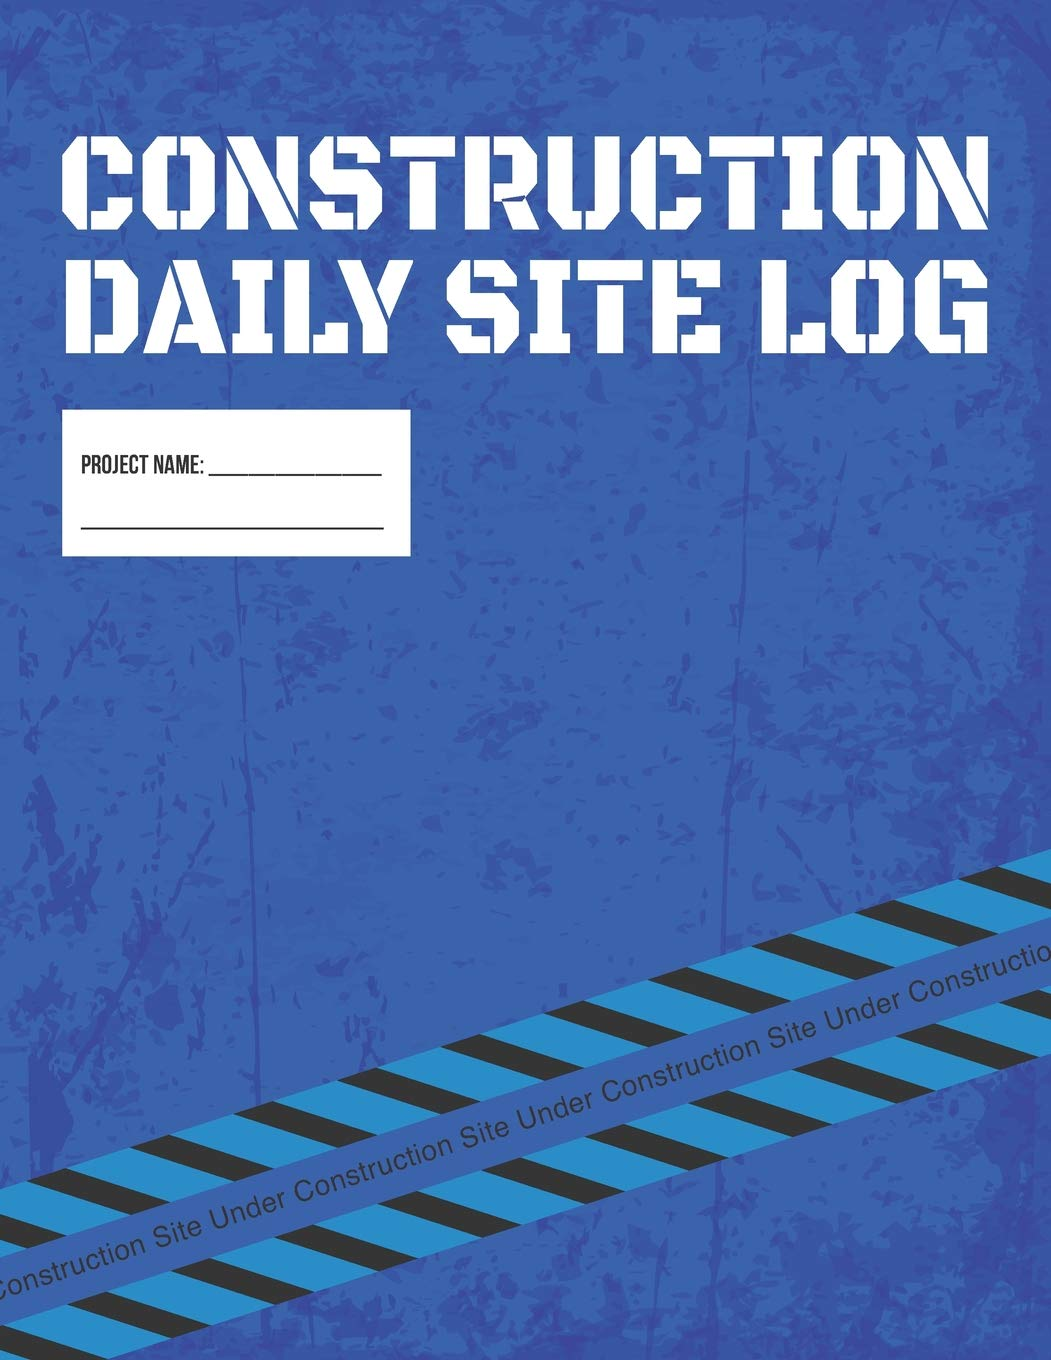 Construction Daily Site Log Book Job Site Project Management Report Record Workforce Tasks Schedules Daily Activities Etc Useful Books 9781795486064 Amazon Com Books